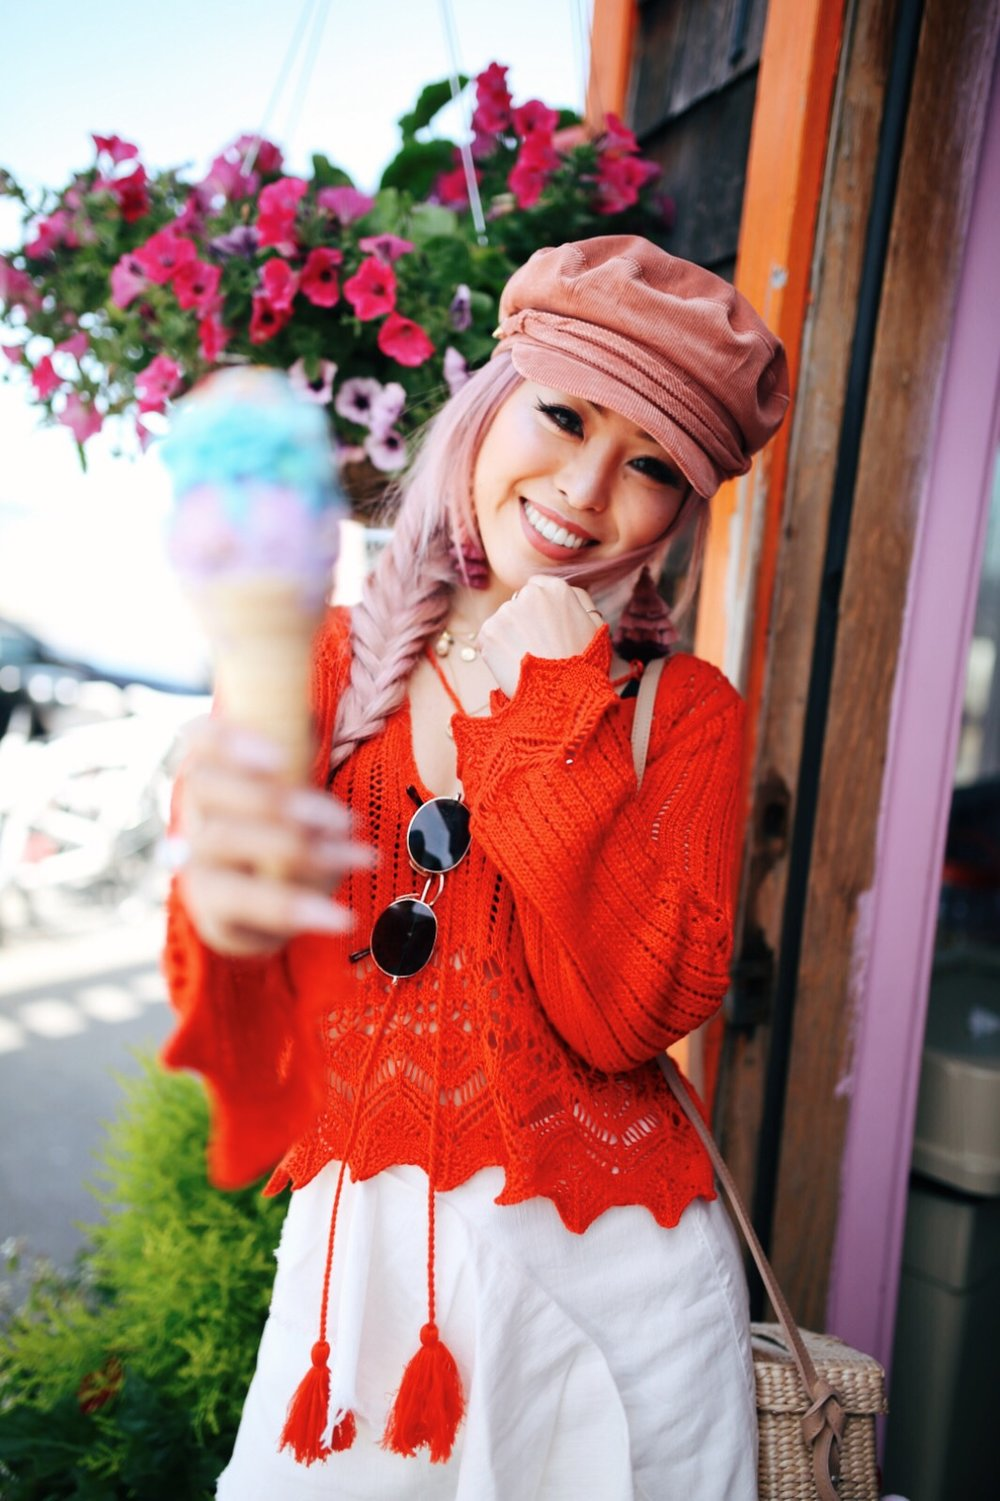 River Island Pink cord baker boy hat-Pink ombre tassel drop earrings-Red crotchet knit tassel crop top-White frill denim skort-White scallop block heel sandals-Shein Straw box bag with pom pom-Aikas Love Closet-Seattle Style Fashion Blogger-Japanese-Pink Hair-Side fishtail braid-summer style-smile-Ice Cream 5